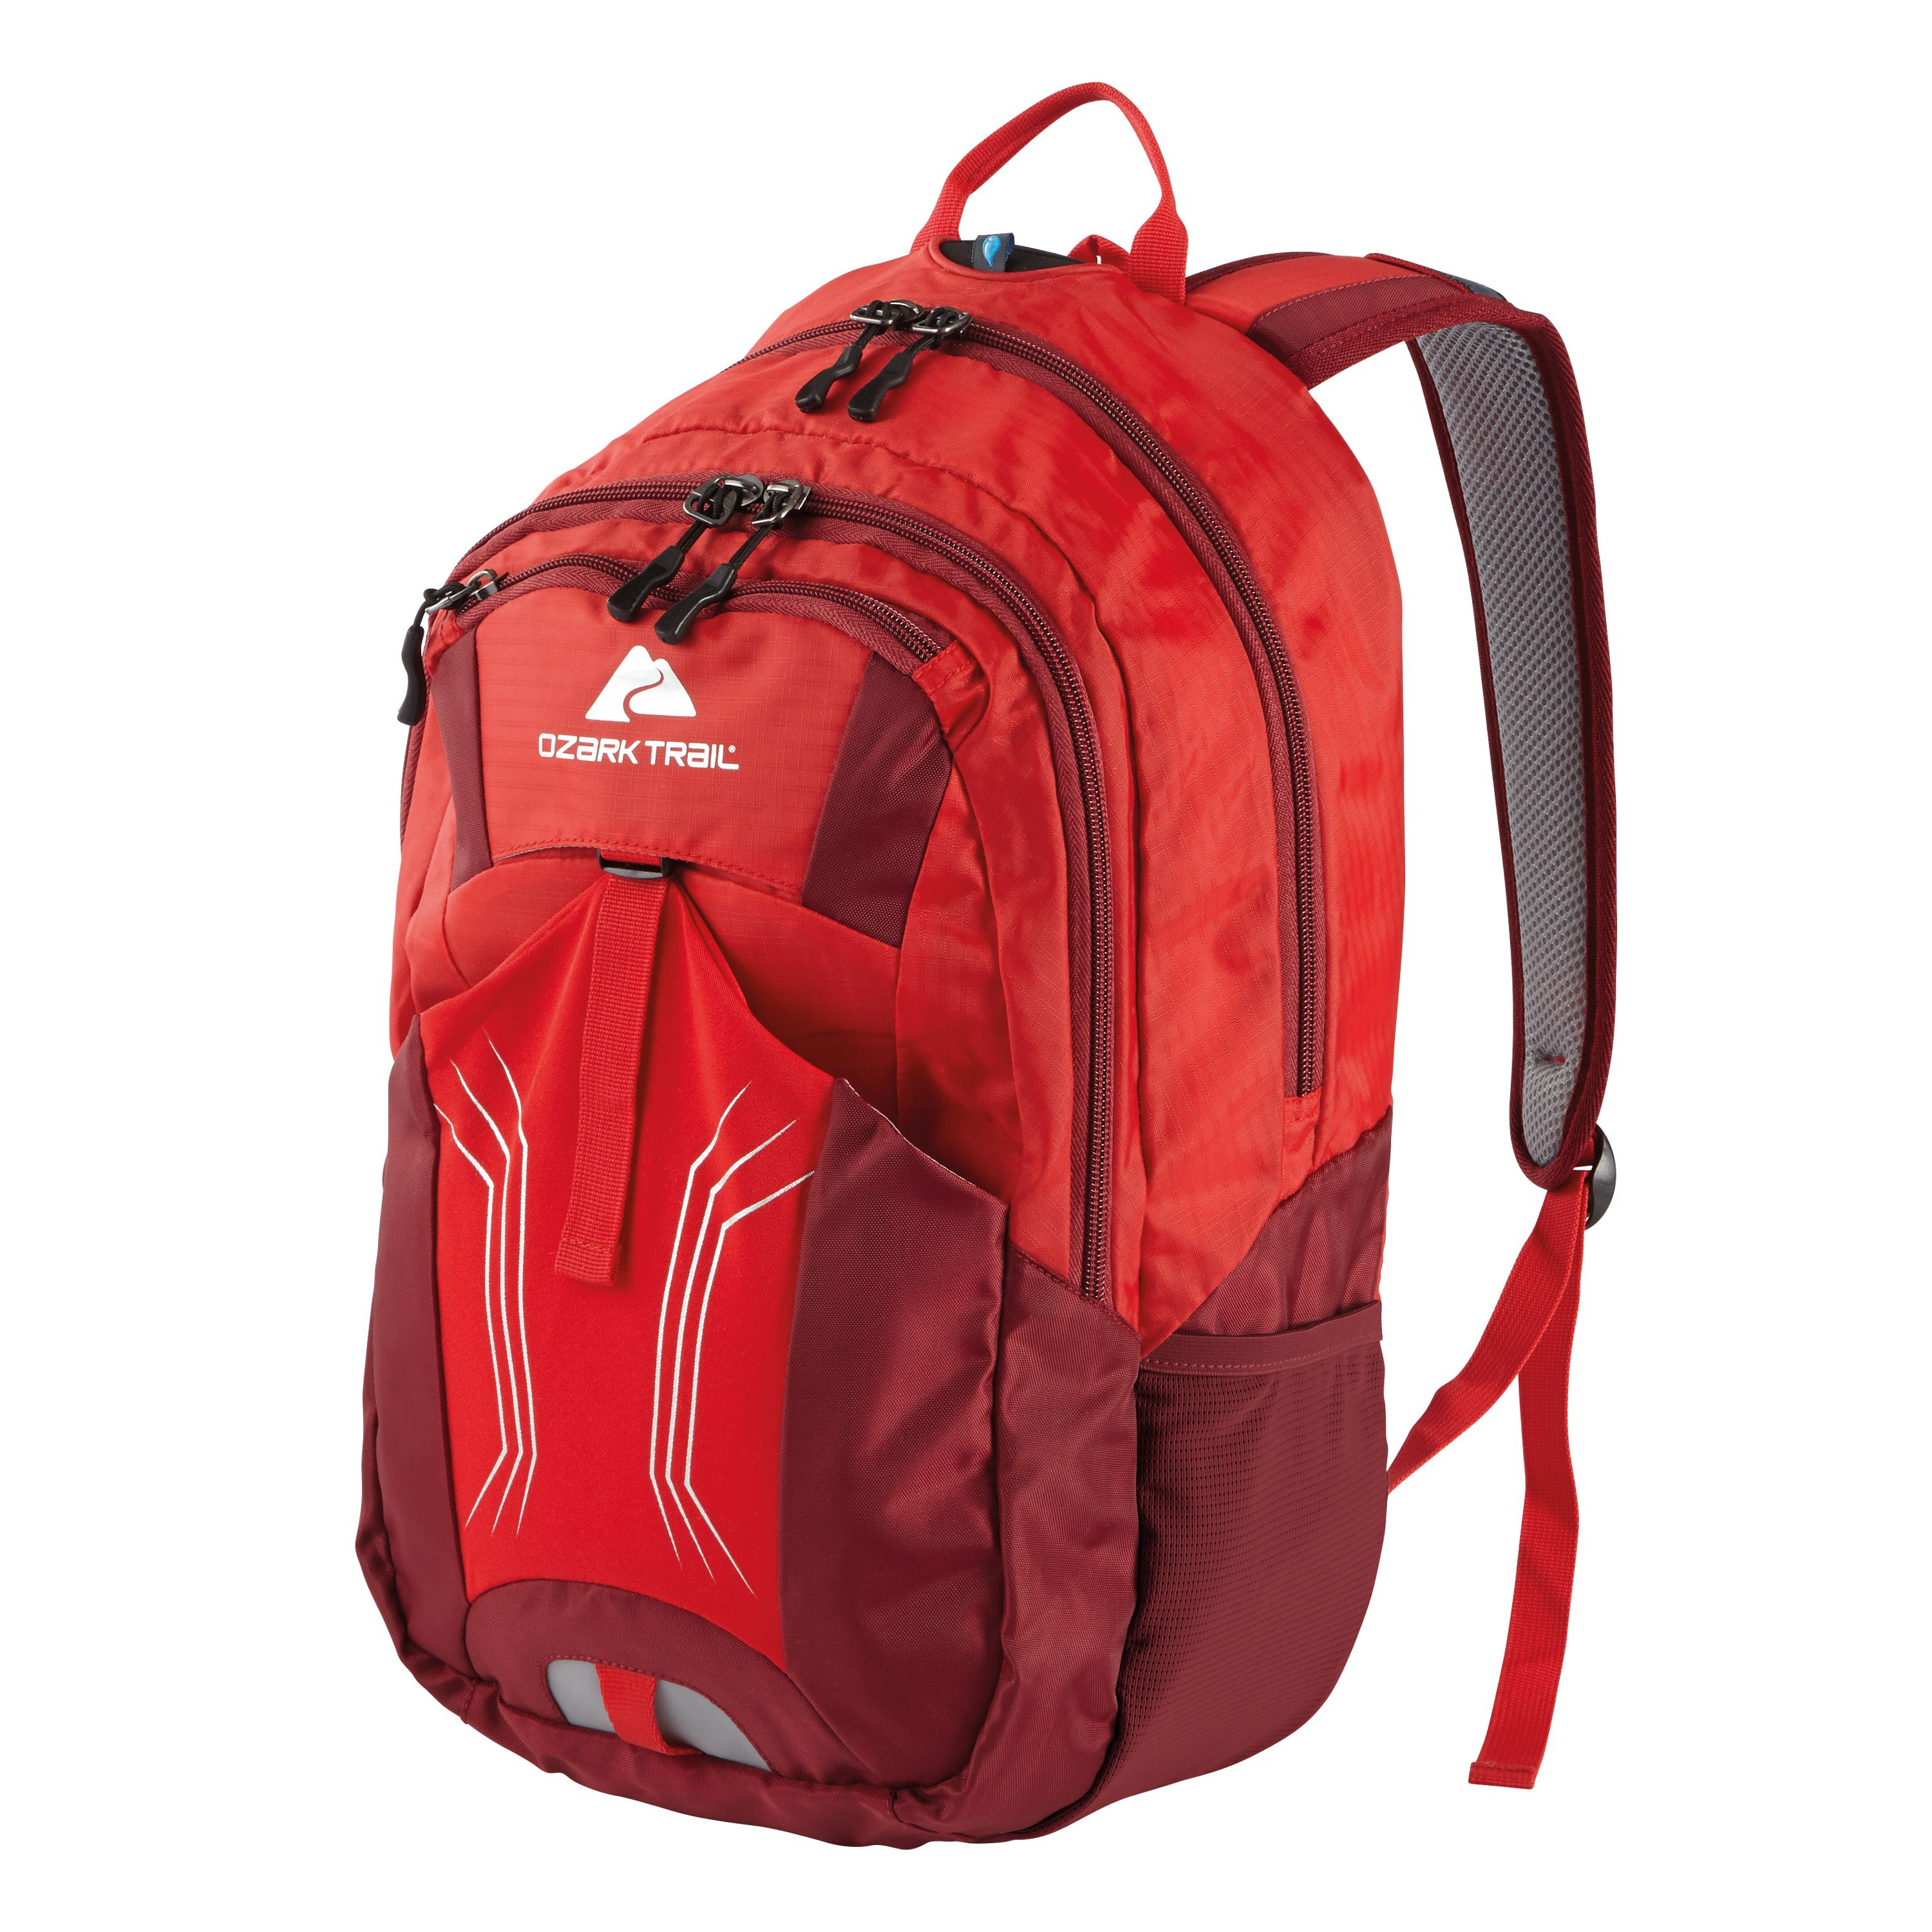 Ozark Trail Stillwater Daypack Backpack, 25 L